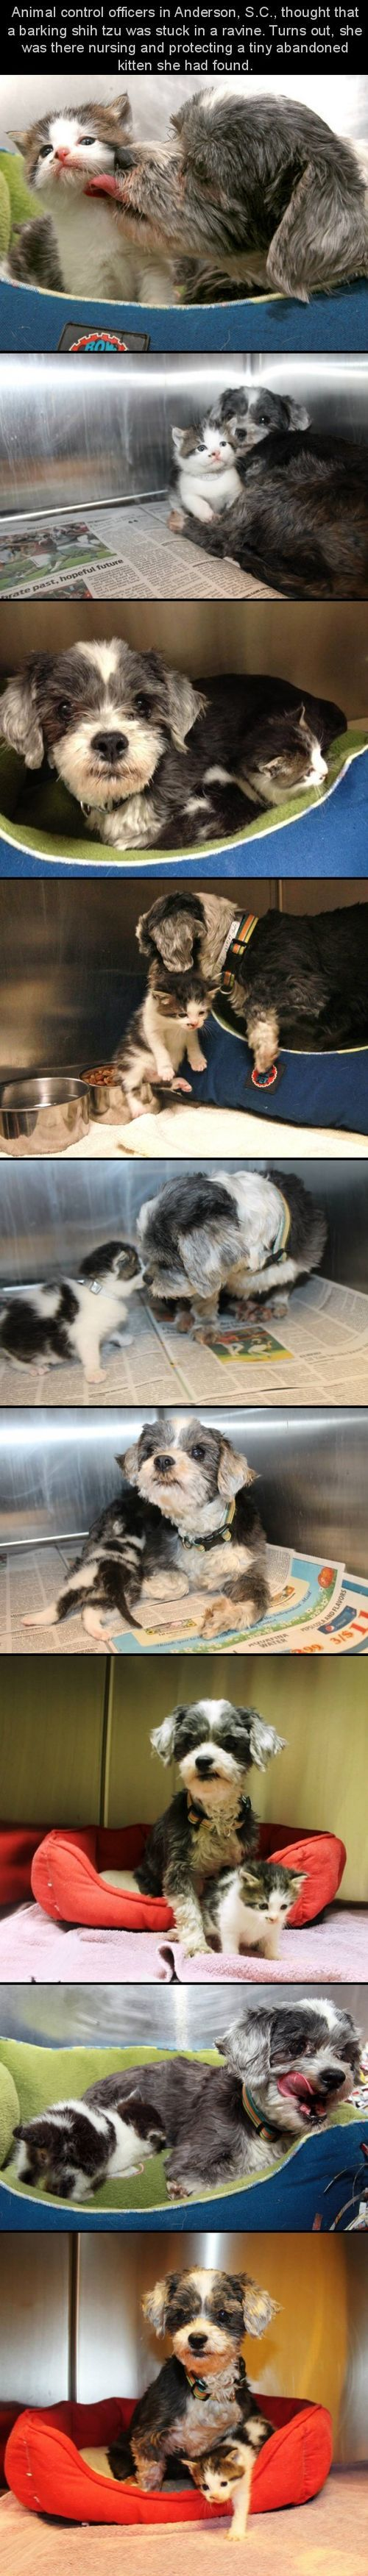 Dog Finds A Tiny Kitten, Risks Everything To Save Her....animals are AMAZING!